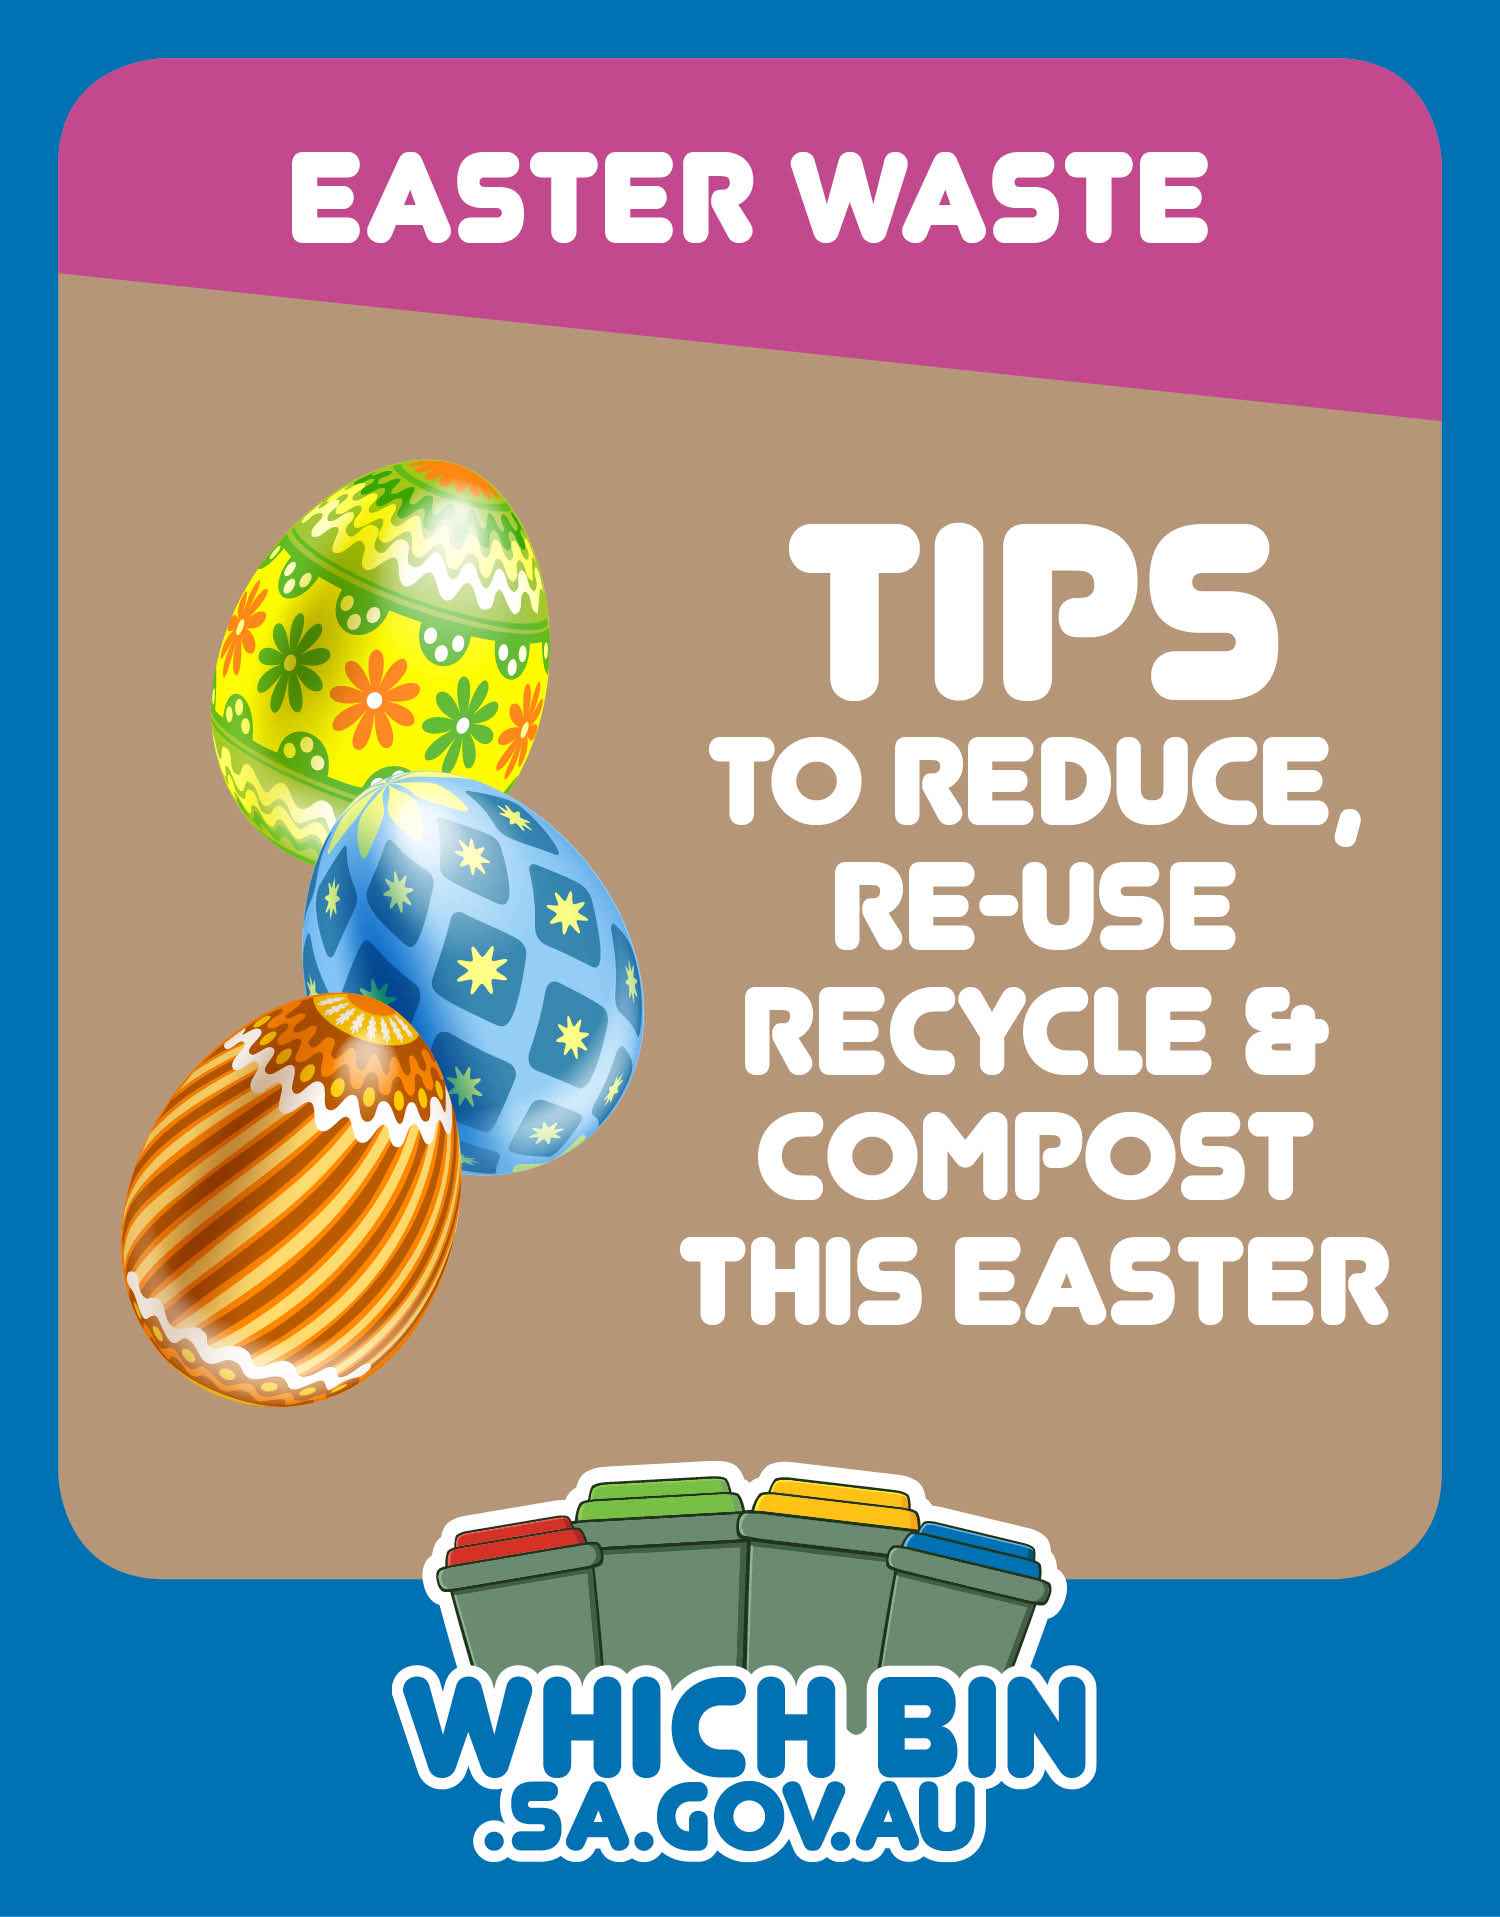 Why waste it? Eggsellent ways to avoid, reduce, reuse, recycle and compost waste this Easter!